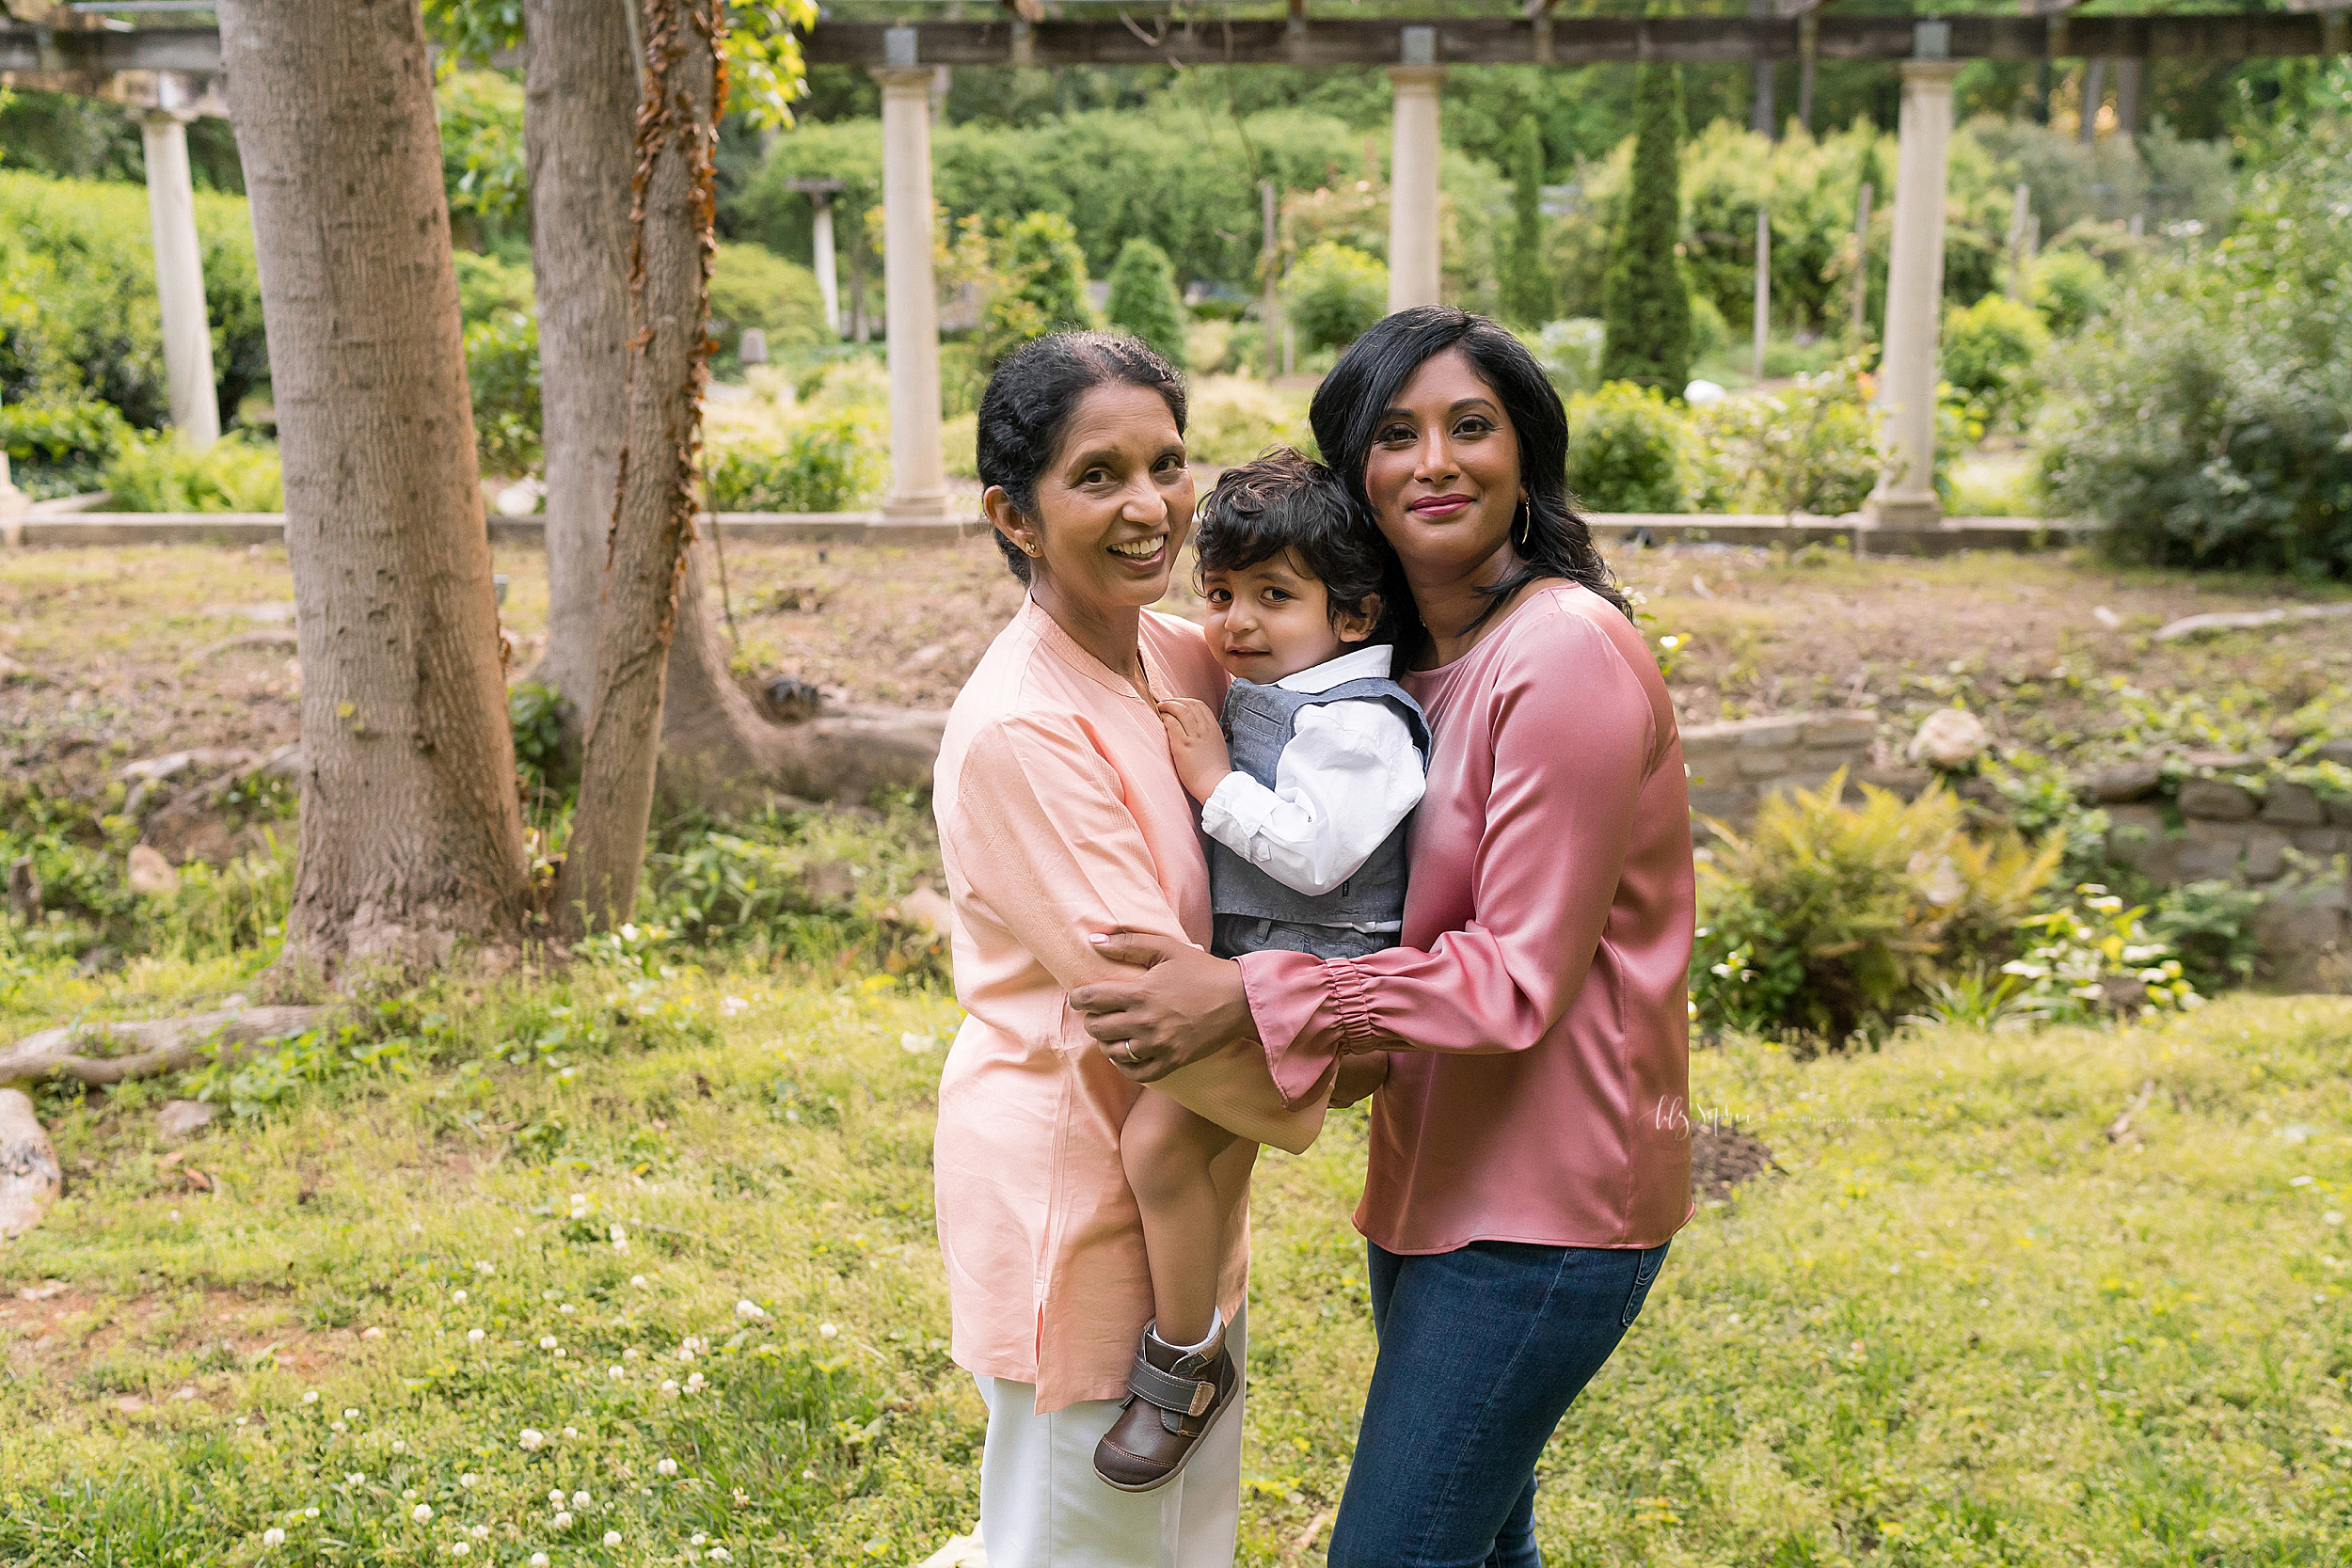 Generational photo of an Indian grandmother, daughter, and her toddler son at sunset in a garden in Atlanta.